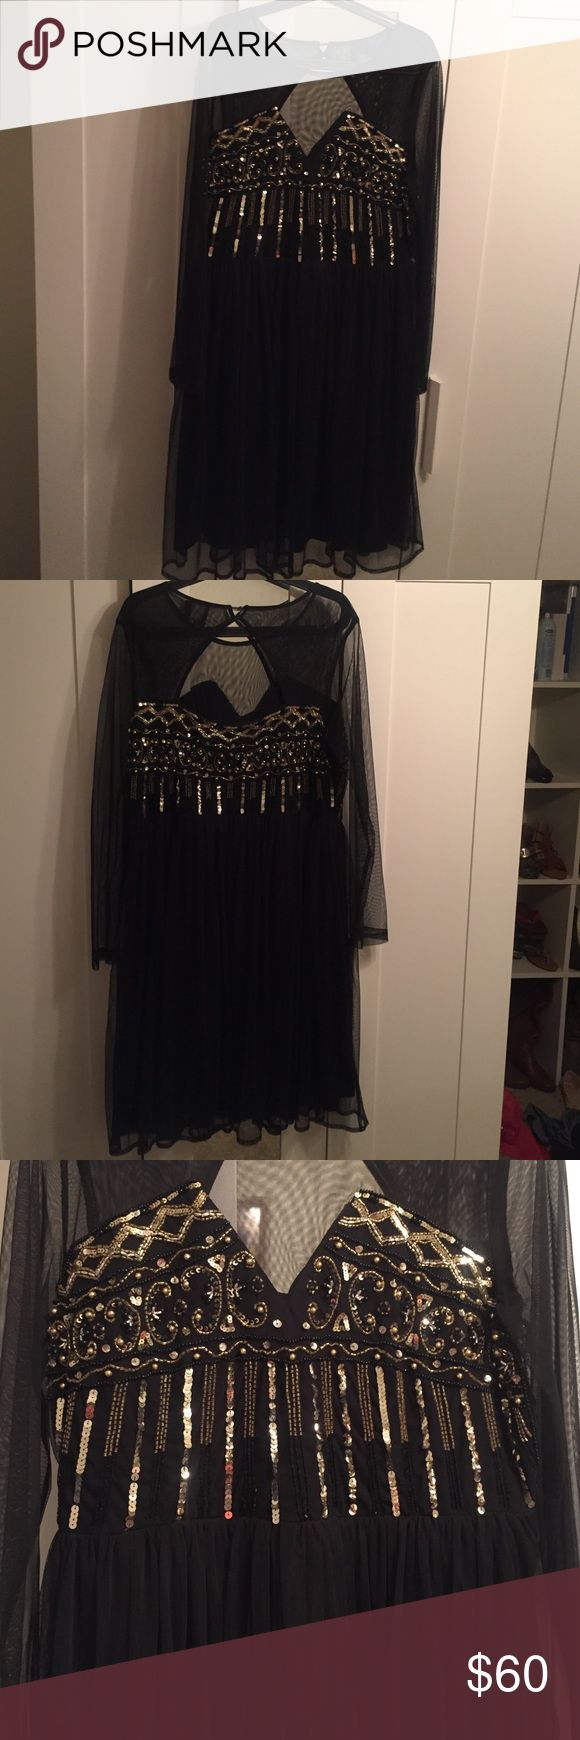 Plus Size Night Dress ASOS Curve black and gold night dress perfect for a special night out. In good conditions only worn once. Buttons on the back are a little bit loose. ASOS Curve Dresses Midi